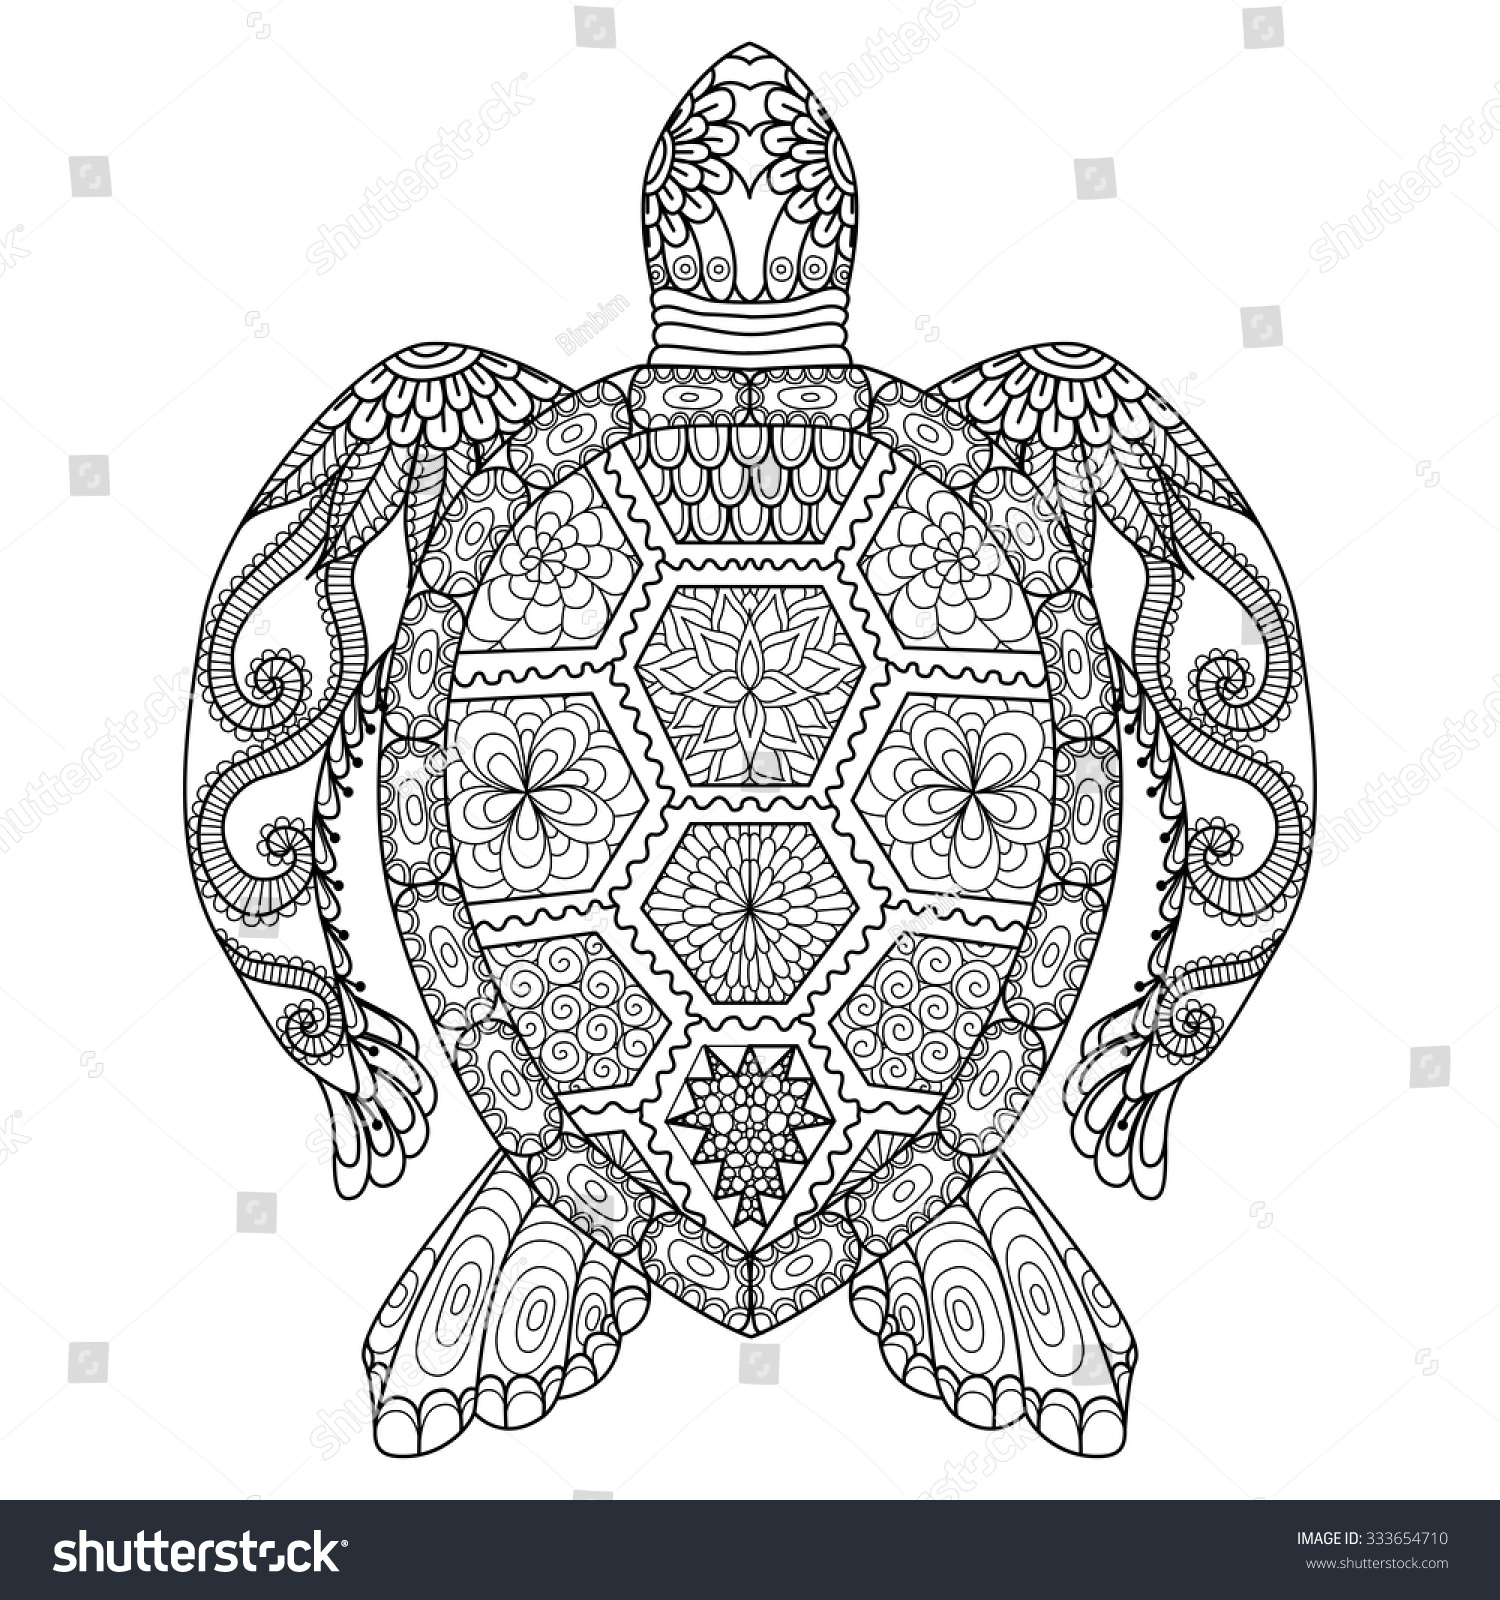 drawing zentangle turtle coloring page shirt stock vector 333654710 shutterstock. Black Bedroom Furniture Sets. Home Design Ideas